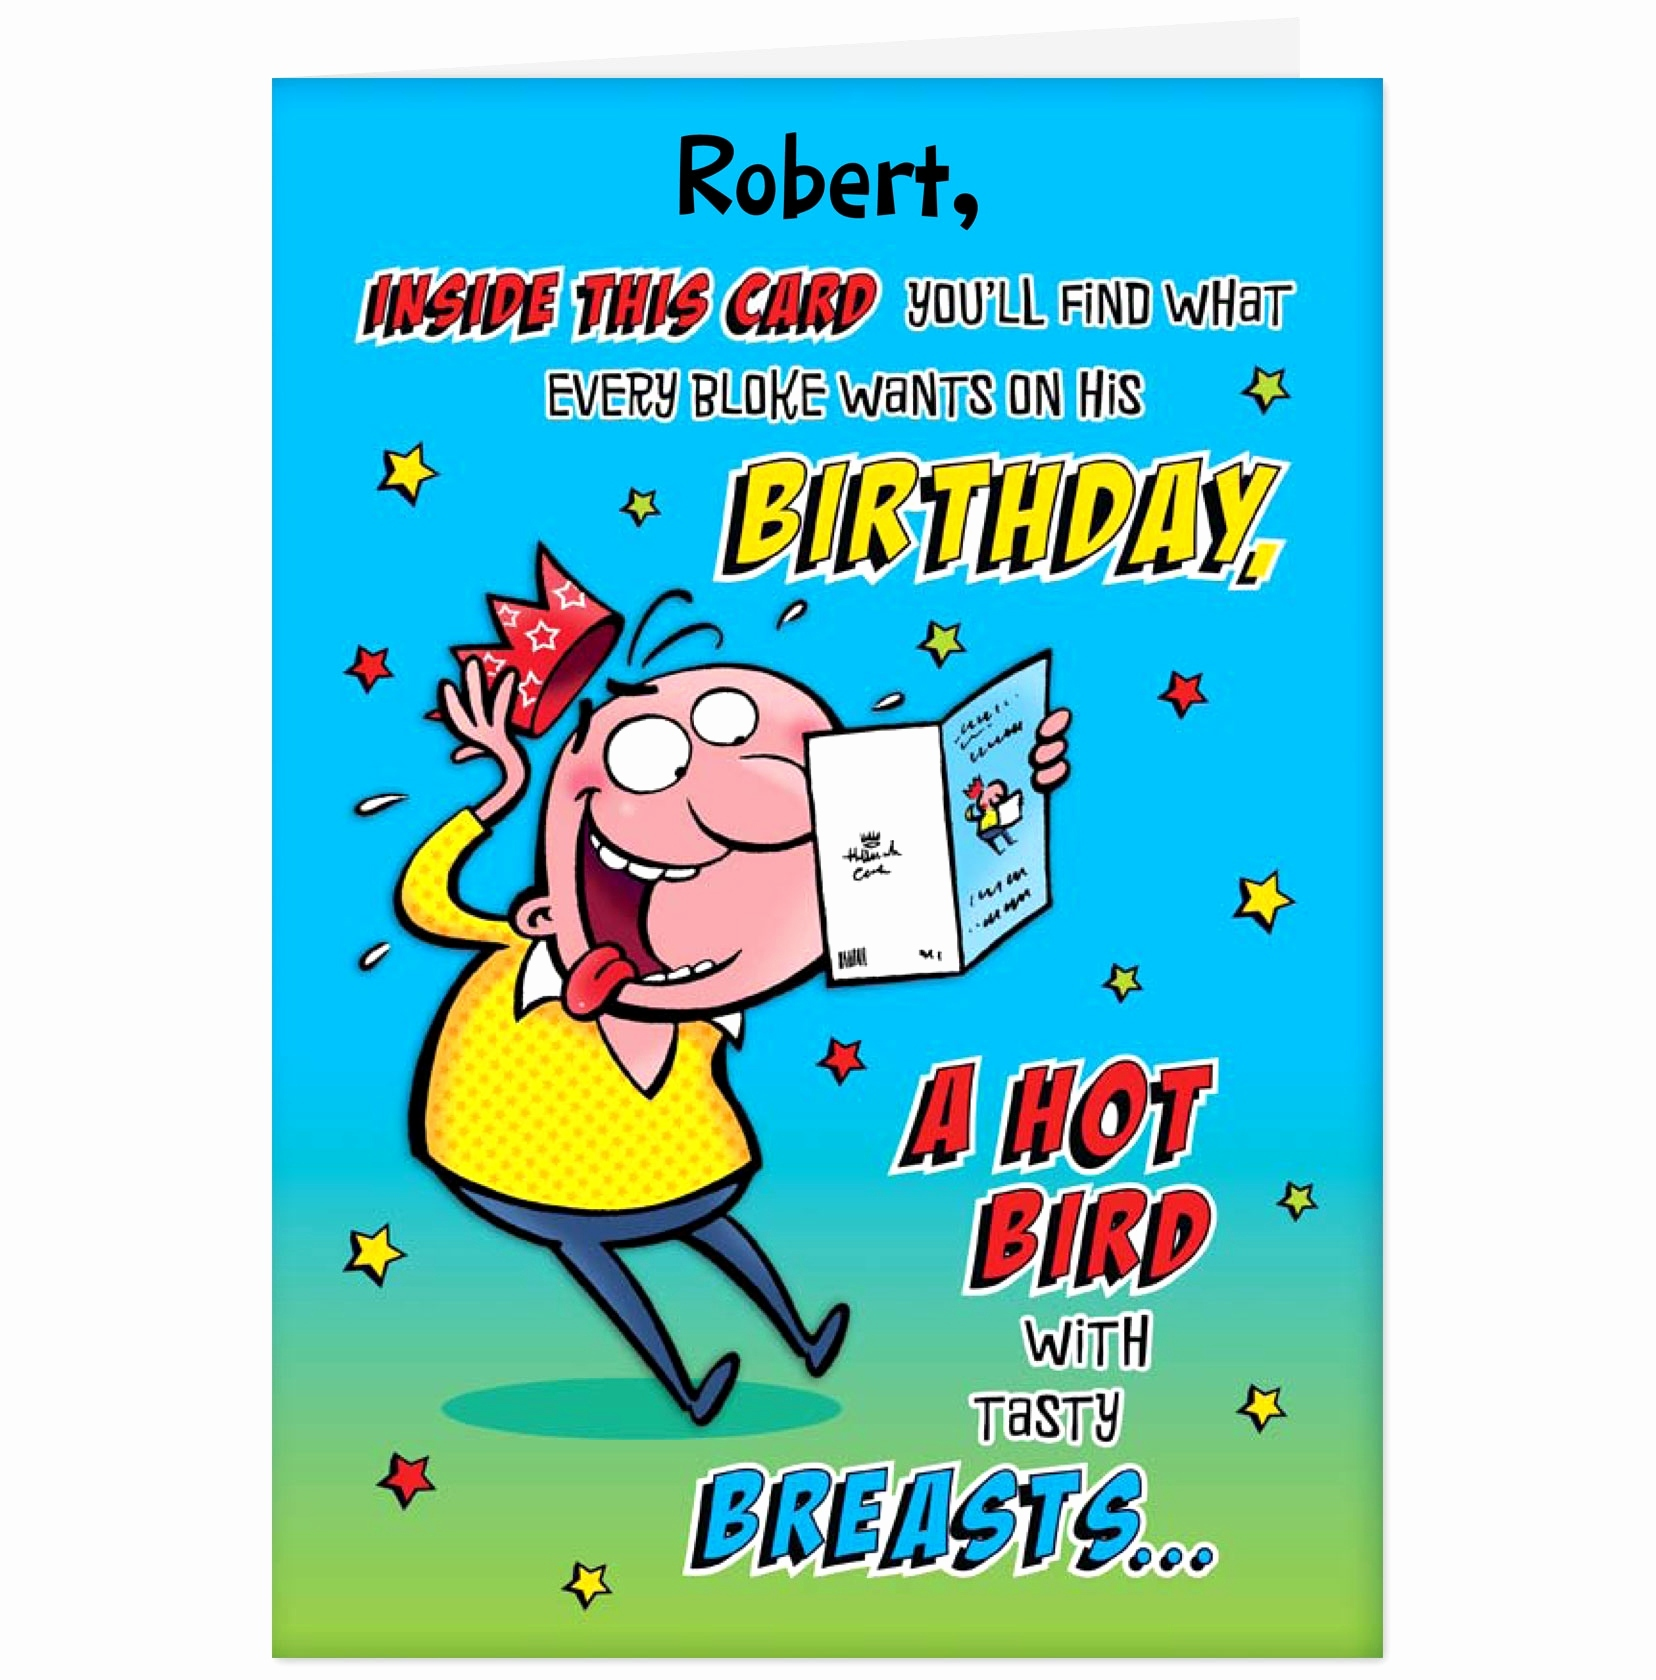 funny birthday card messages ; birthday-card-messages-for-colleagues-luxury-perfect-birthday-card-message-fresh-best-25-birthday-cards-for-mom-of-birthday-card-messages-for-colleagues